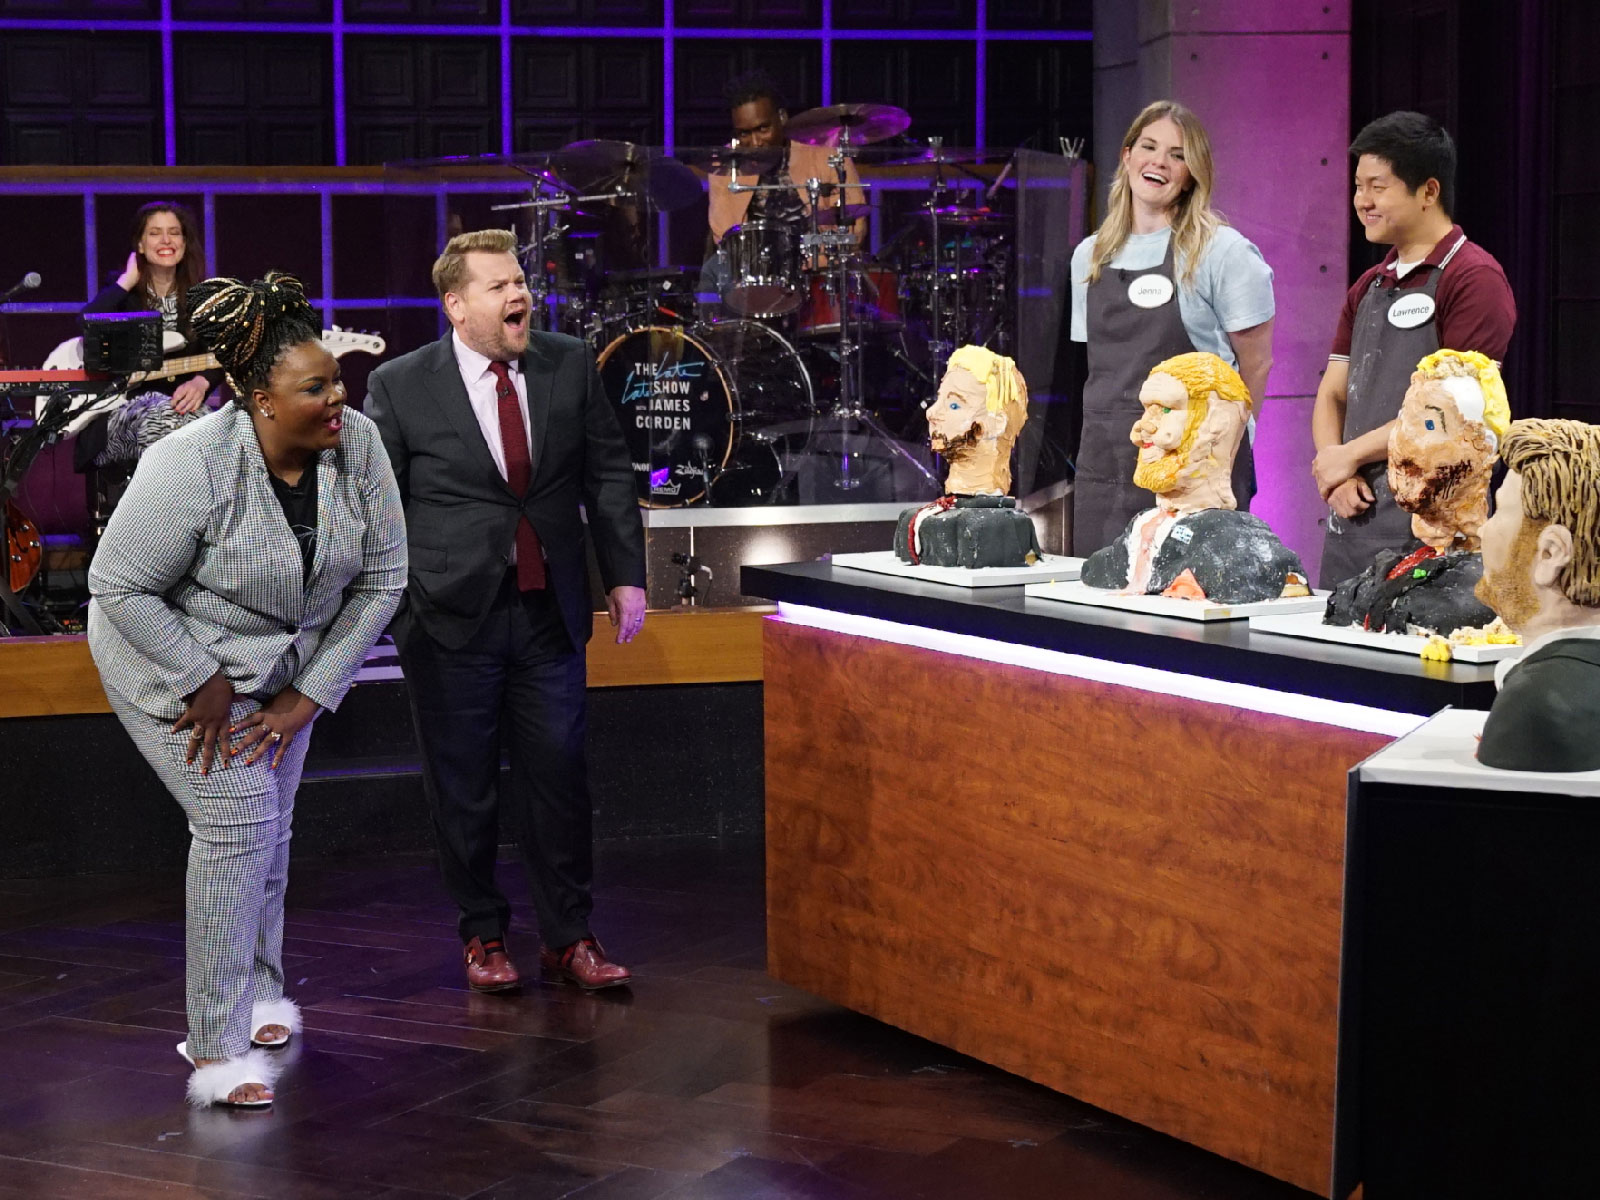 Watch: 'Nailed It!' Host Nicole Byer Judged James Corden Lookalike Cakes on 'The Late Late Show'